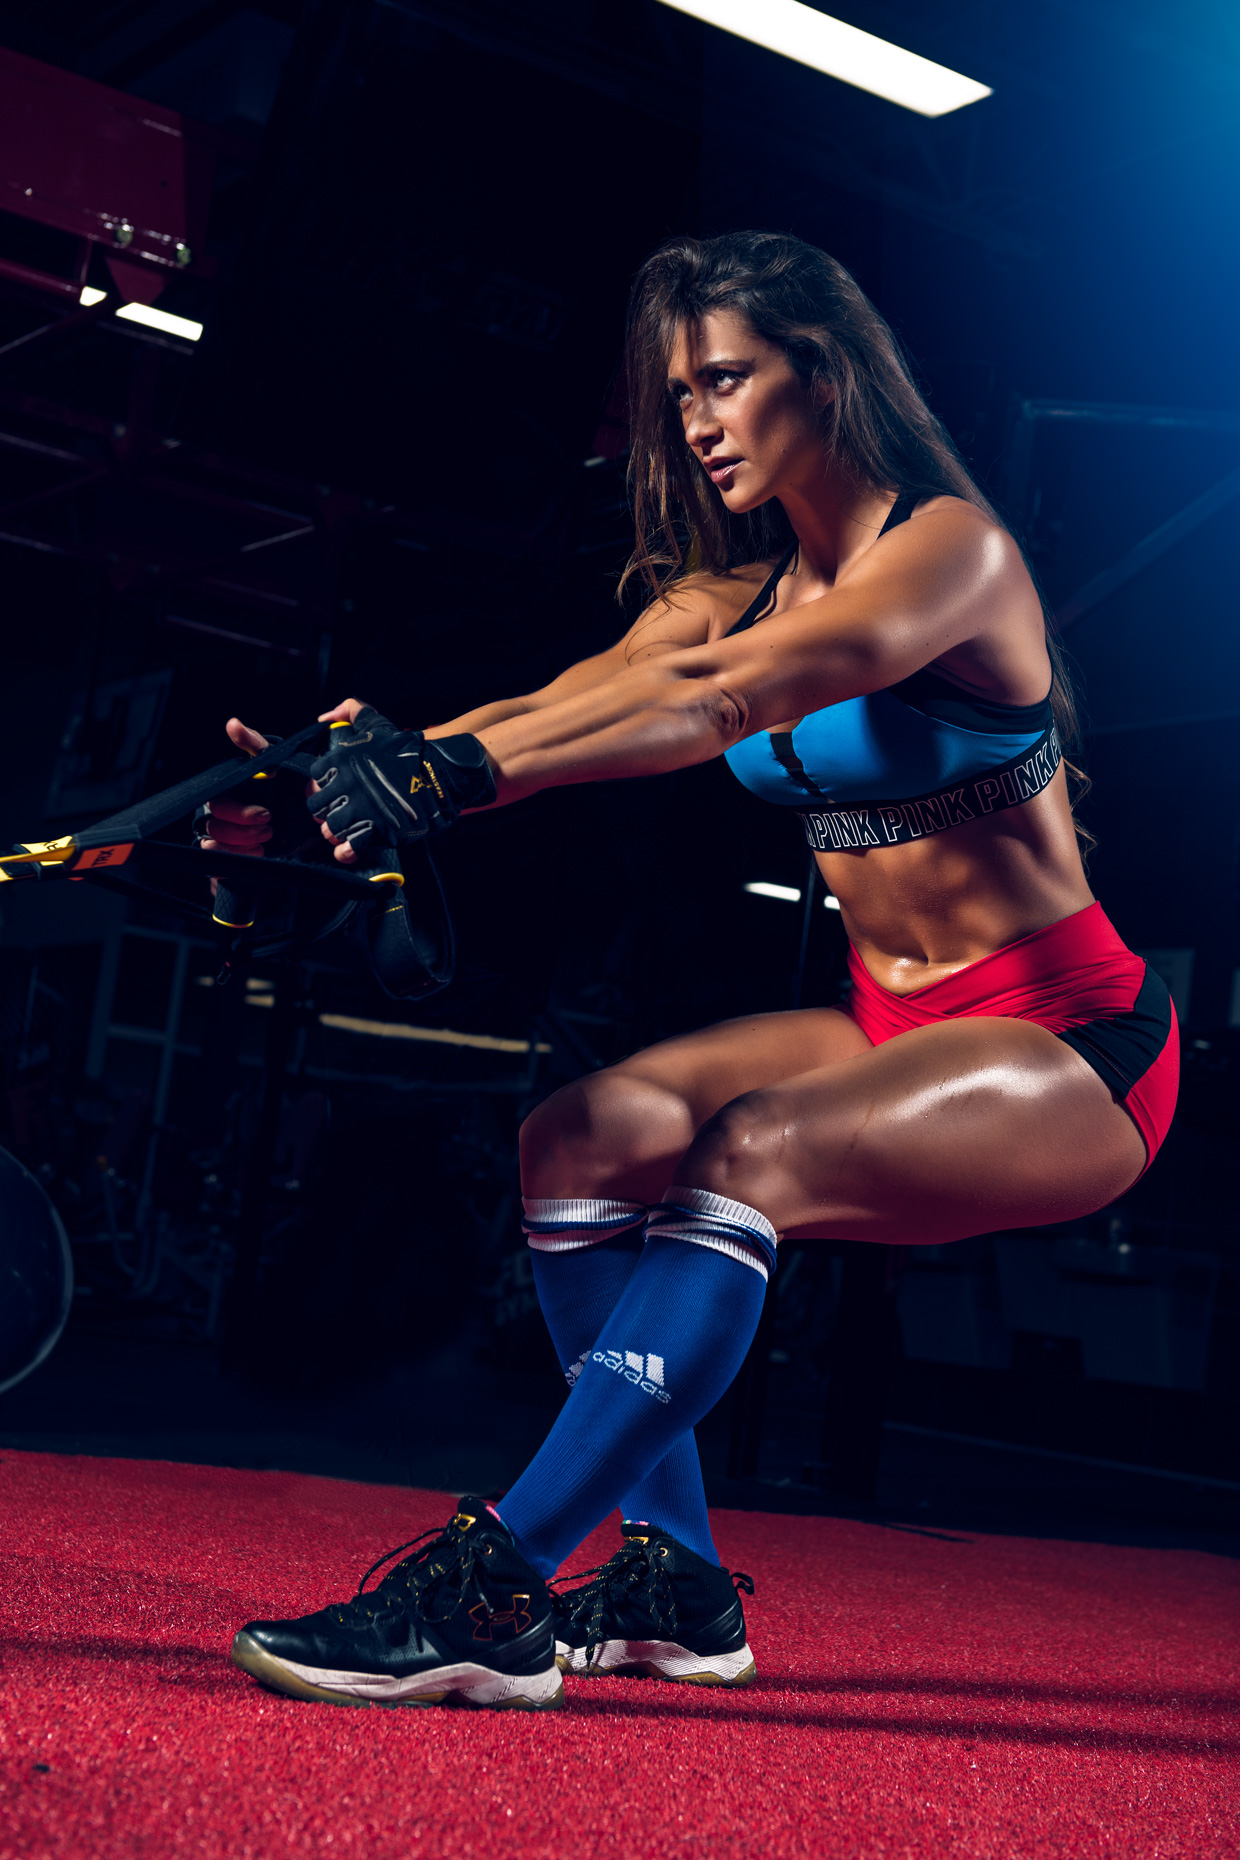 Anais Zanotti - Female Fitness Model - James Woodley - Fitness Photographer - Miami FL